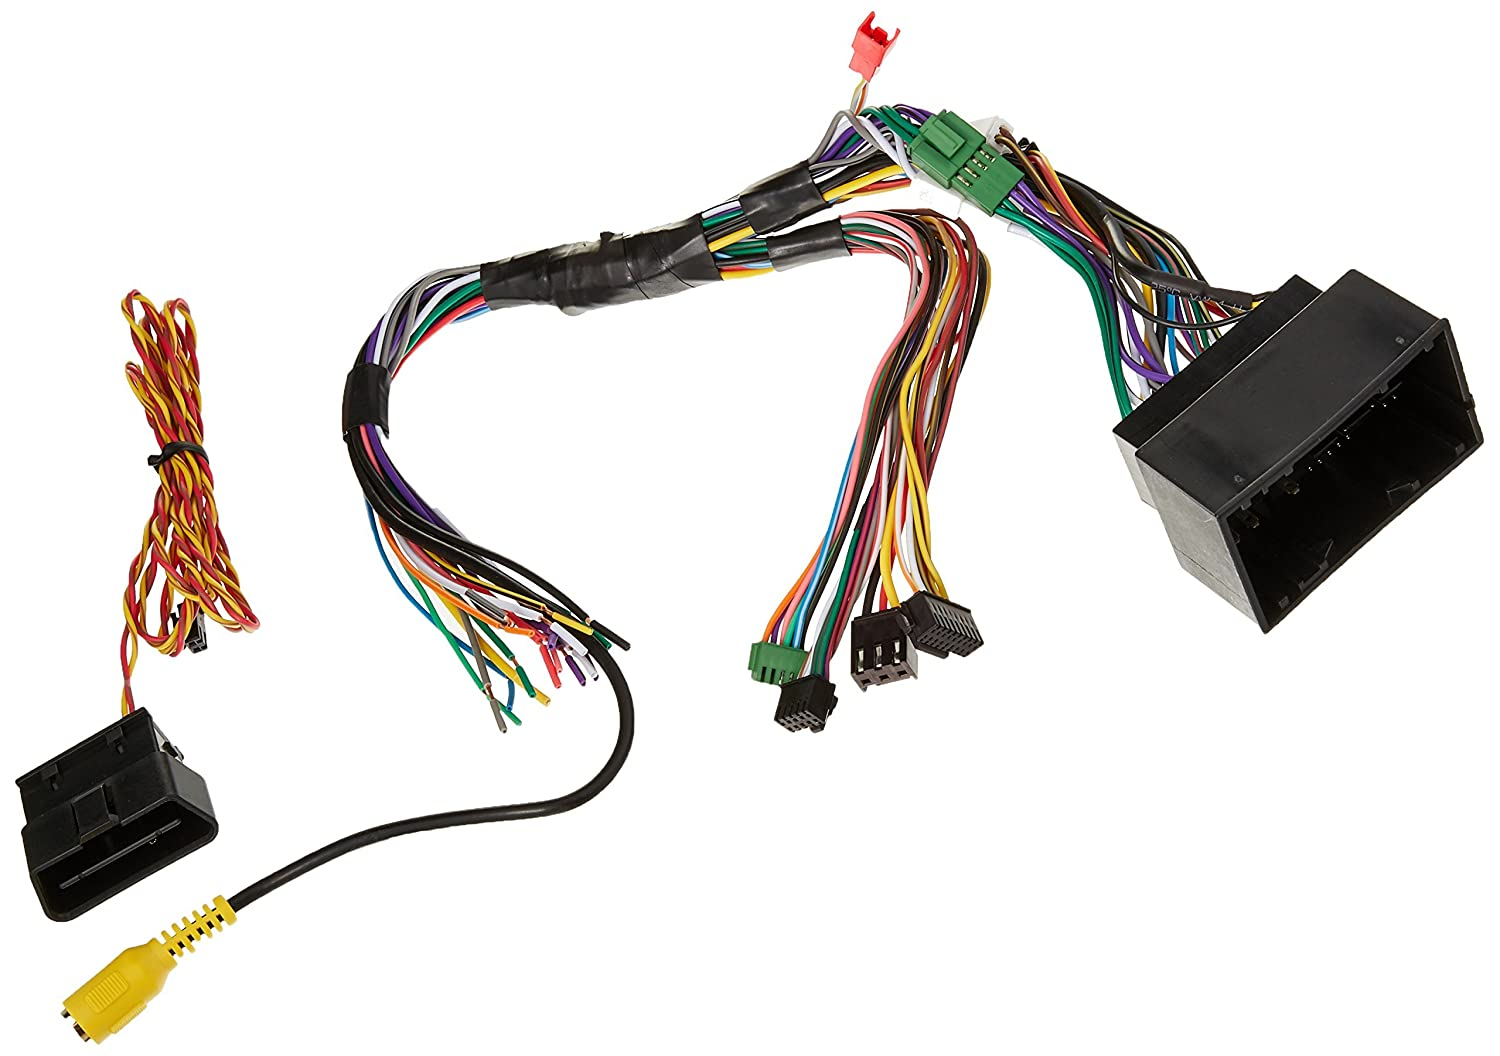 Amazon.com: iDatalink Maestro ADS-HRN-RR-CH3 CH3 Plug & Play T-Harness for  Chrysler,Dodge,Jeep: Cell Phones & Accessories